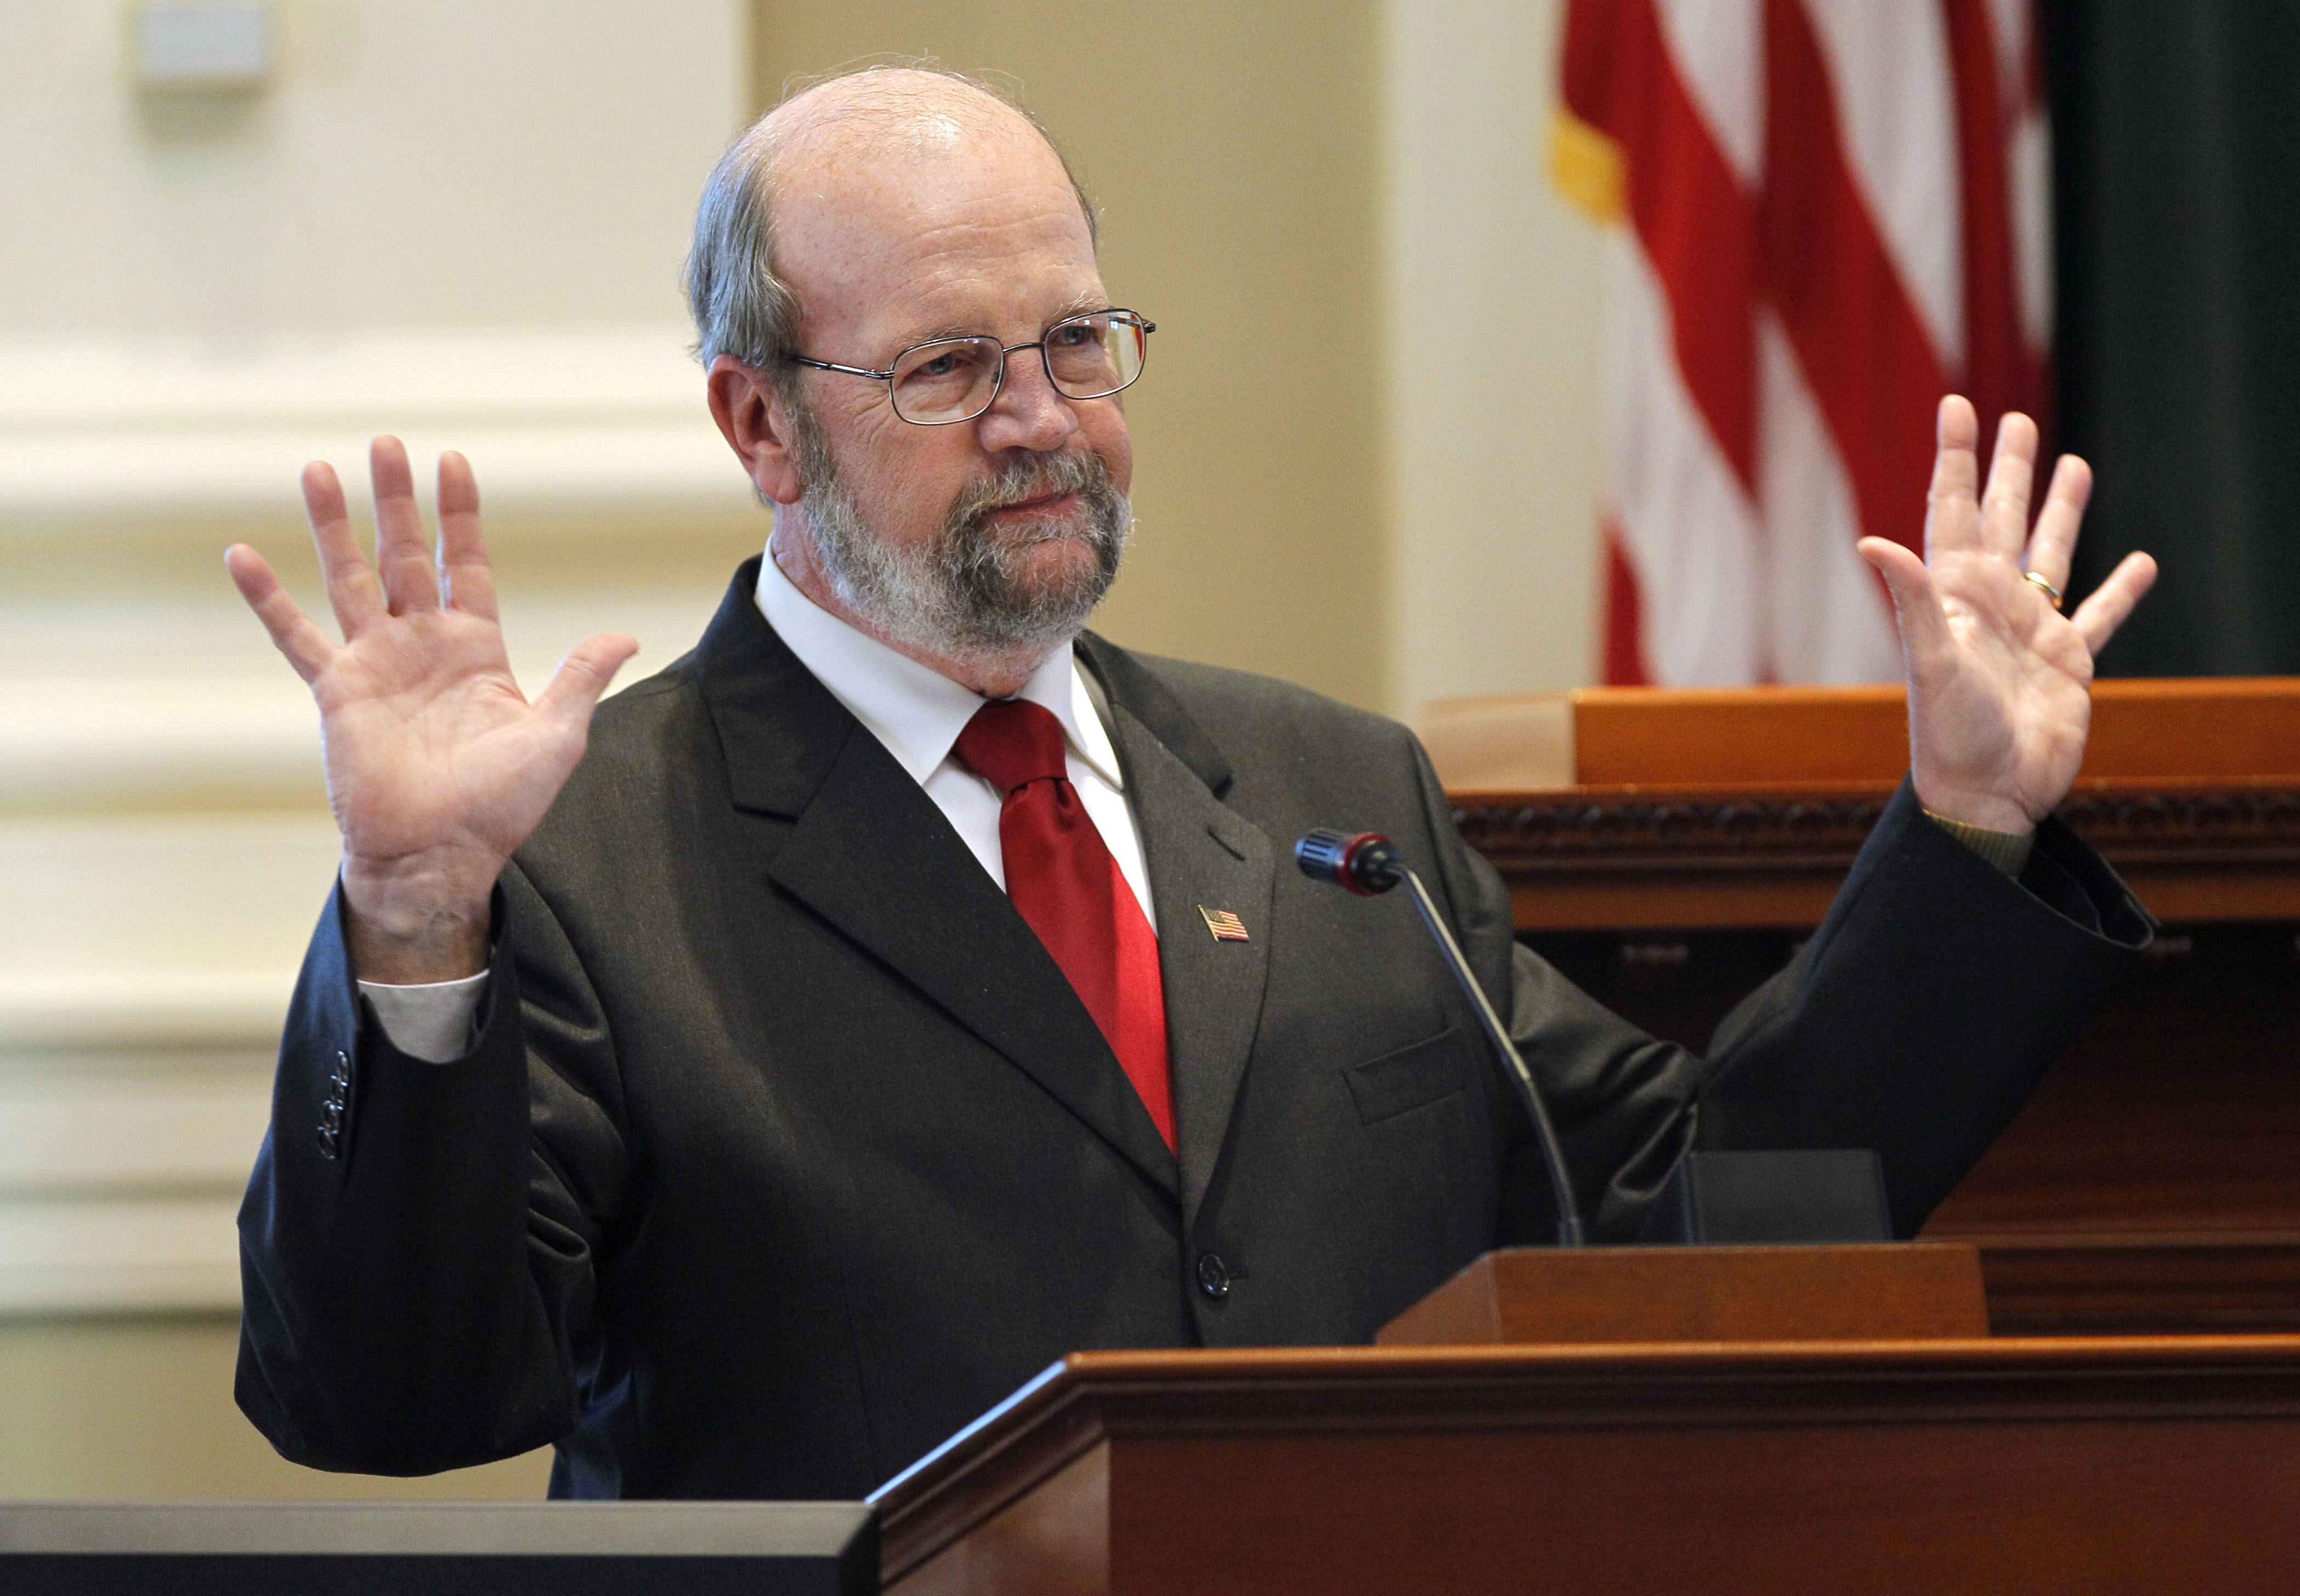 State Rep. Robert Nutting, R-Oakland, acknowledges applause after winning nomination for House speaker during a Republican Caucus on Friday, Nov. 12, 2010, at the State House in Augusta.  Nutting's nomination assures him a position not held by a Republican since the GOP last had a majority in the early 1970s.